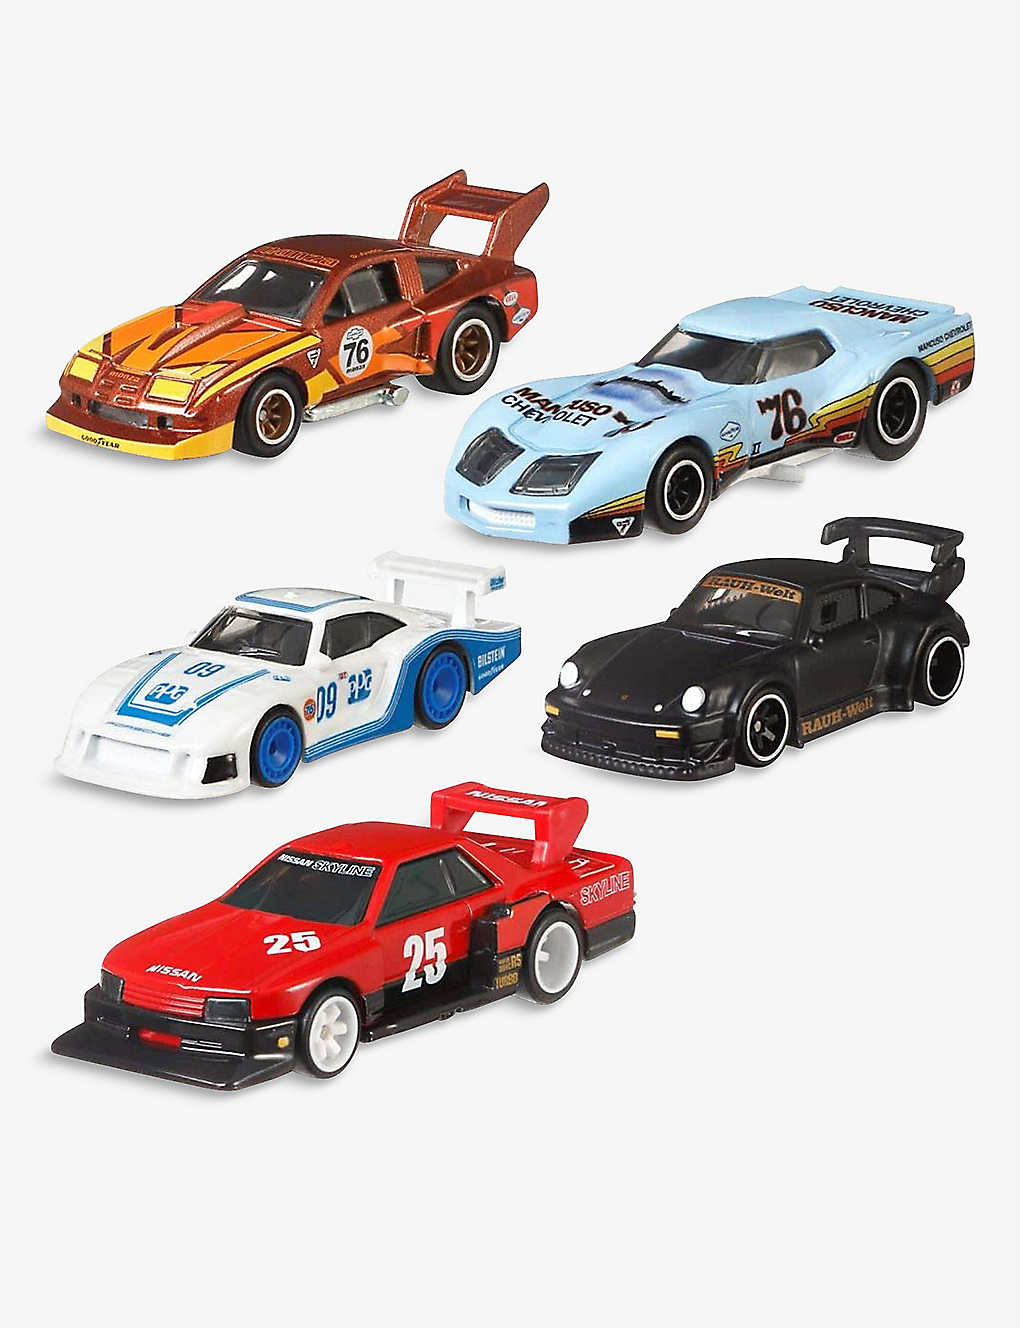 HOTWHEELS: Hot Wheels Car Culture assortment